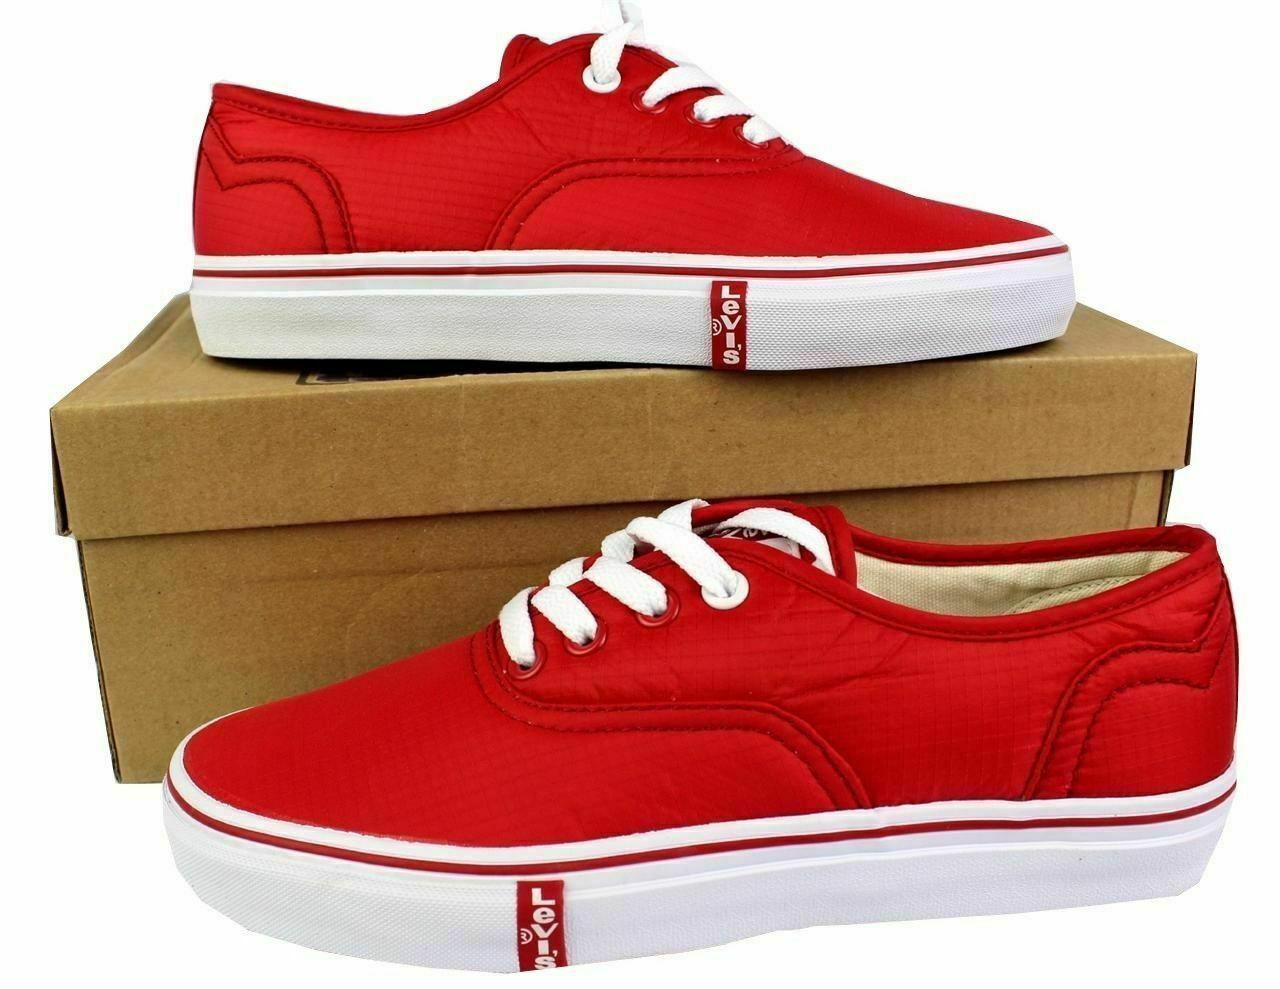 Levi's Women's Classic Premium Atheltic Sneakers Shoes Rylee 524342-01R Red